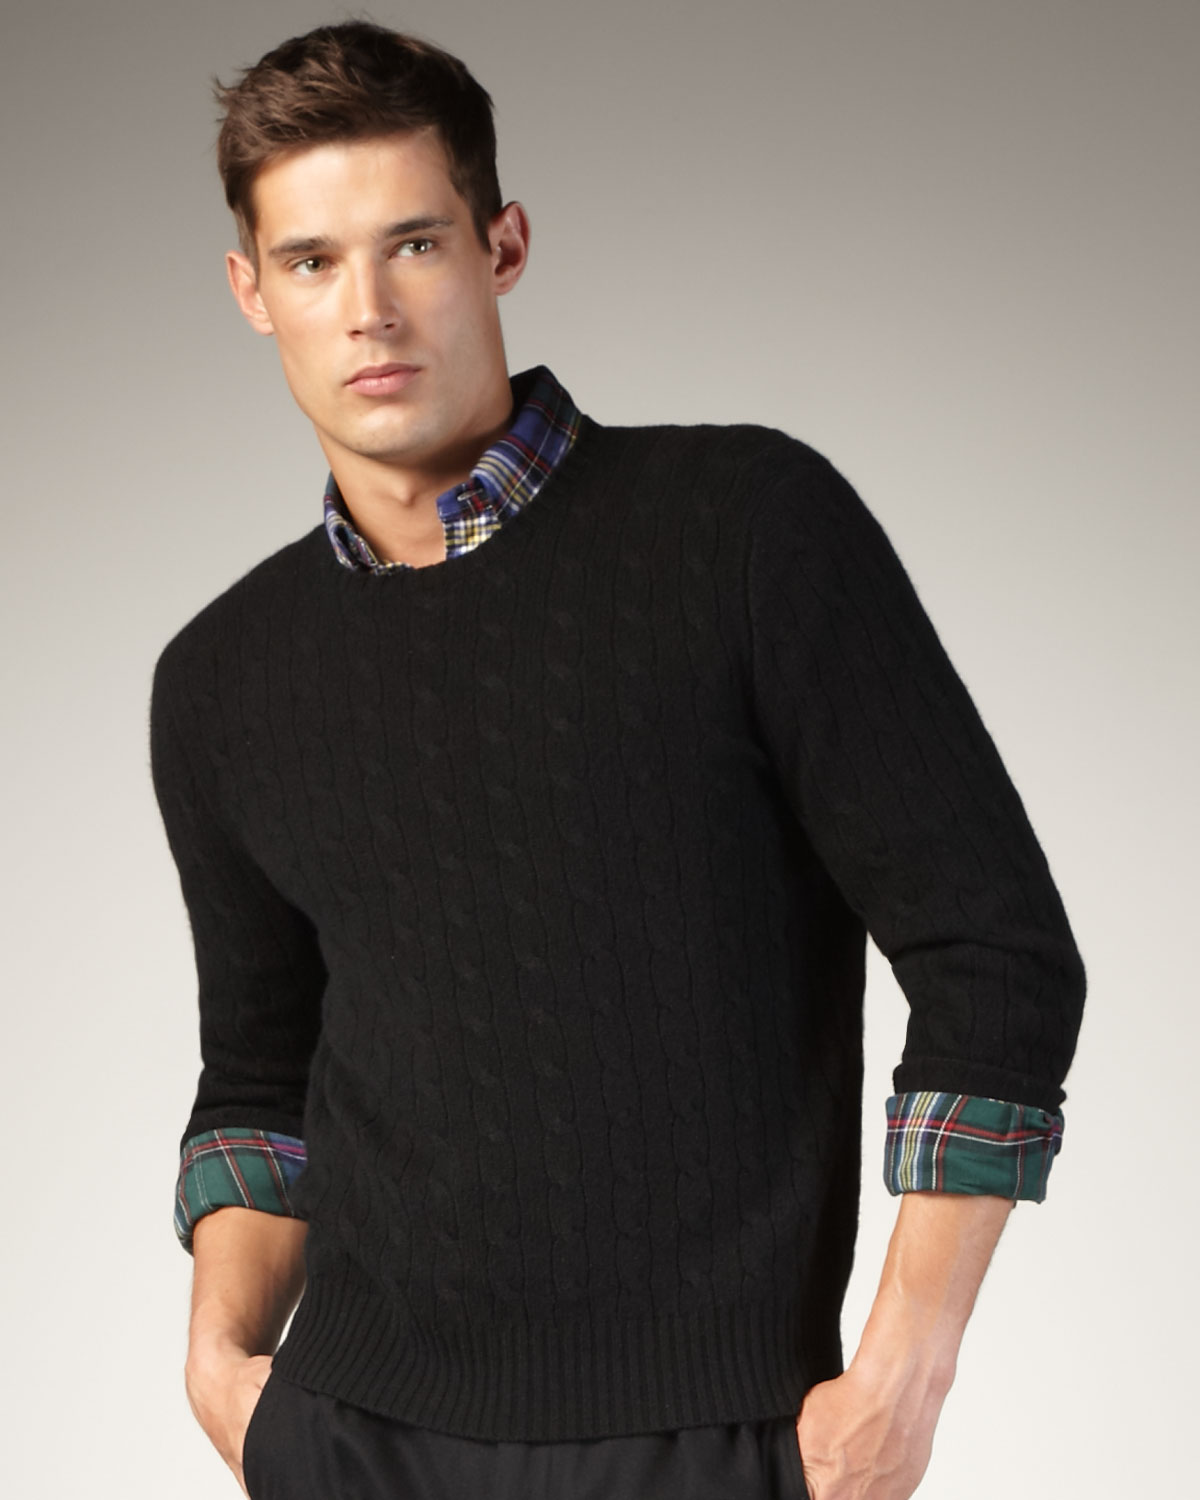 Lyst Polo Ralph Lauren Cable Knit Cashmere Sweater In Black For Men